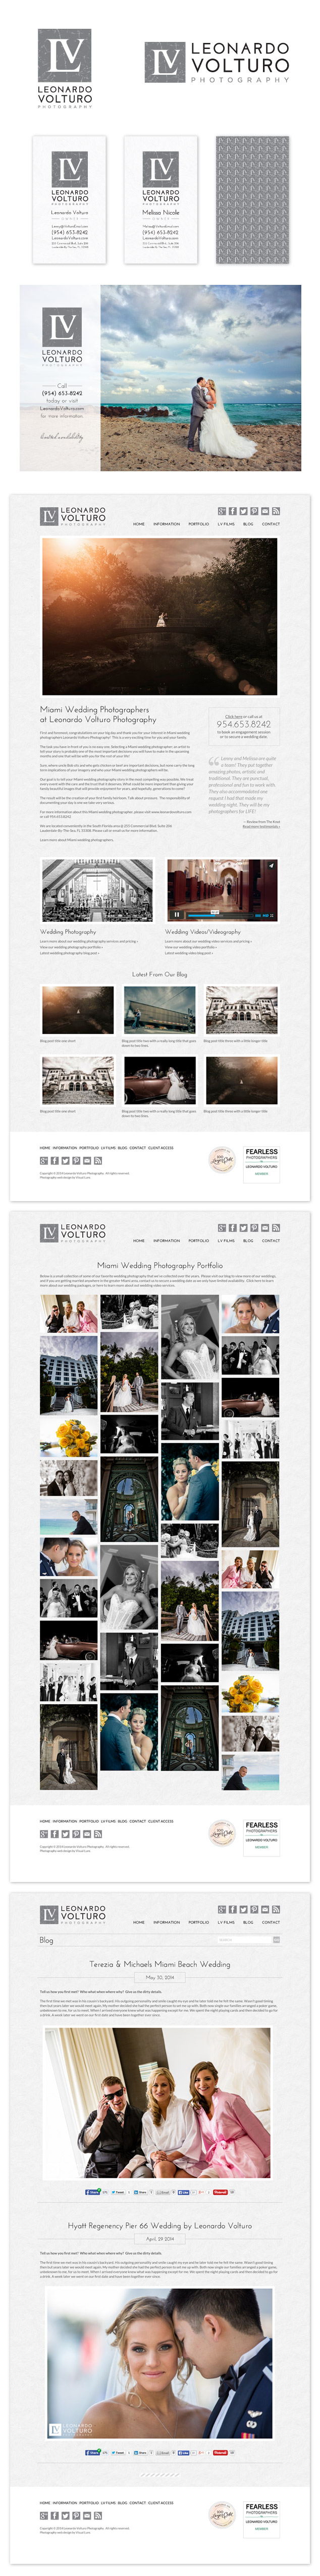 logo and website design for LV photography